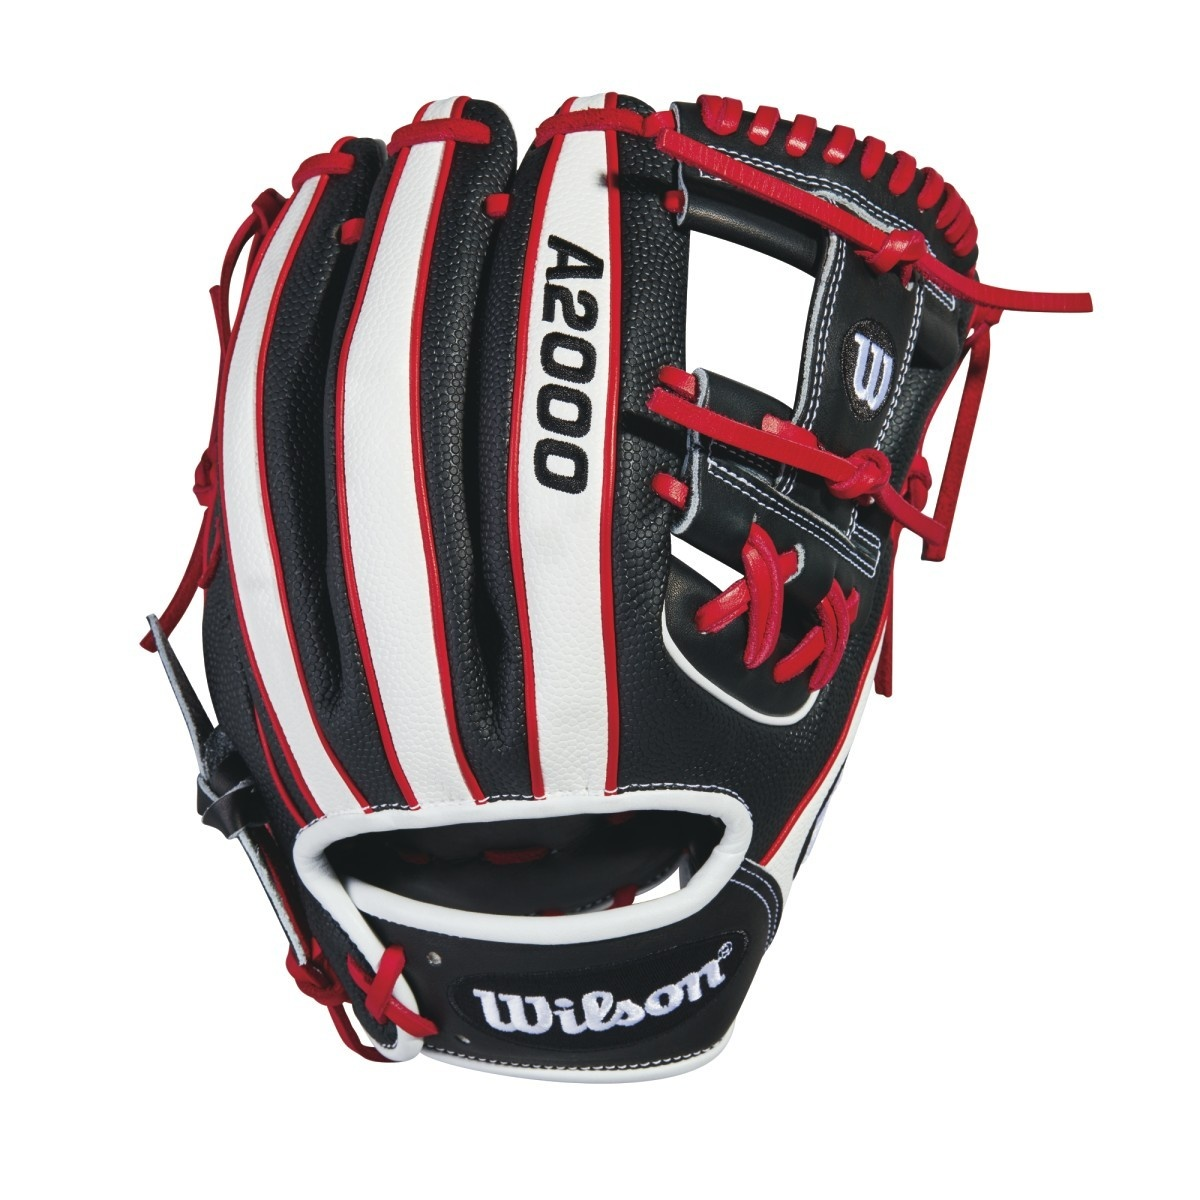 TWO-COLOR SUPERSKIN A2000 1786 GLOVE - FEBRUARY 2017